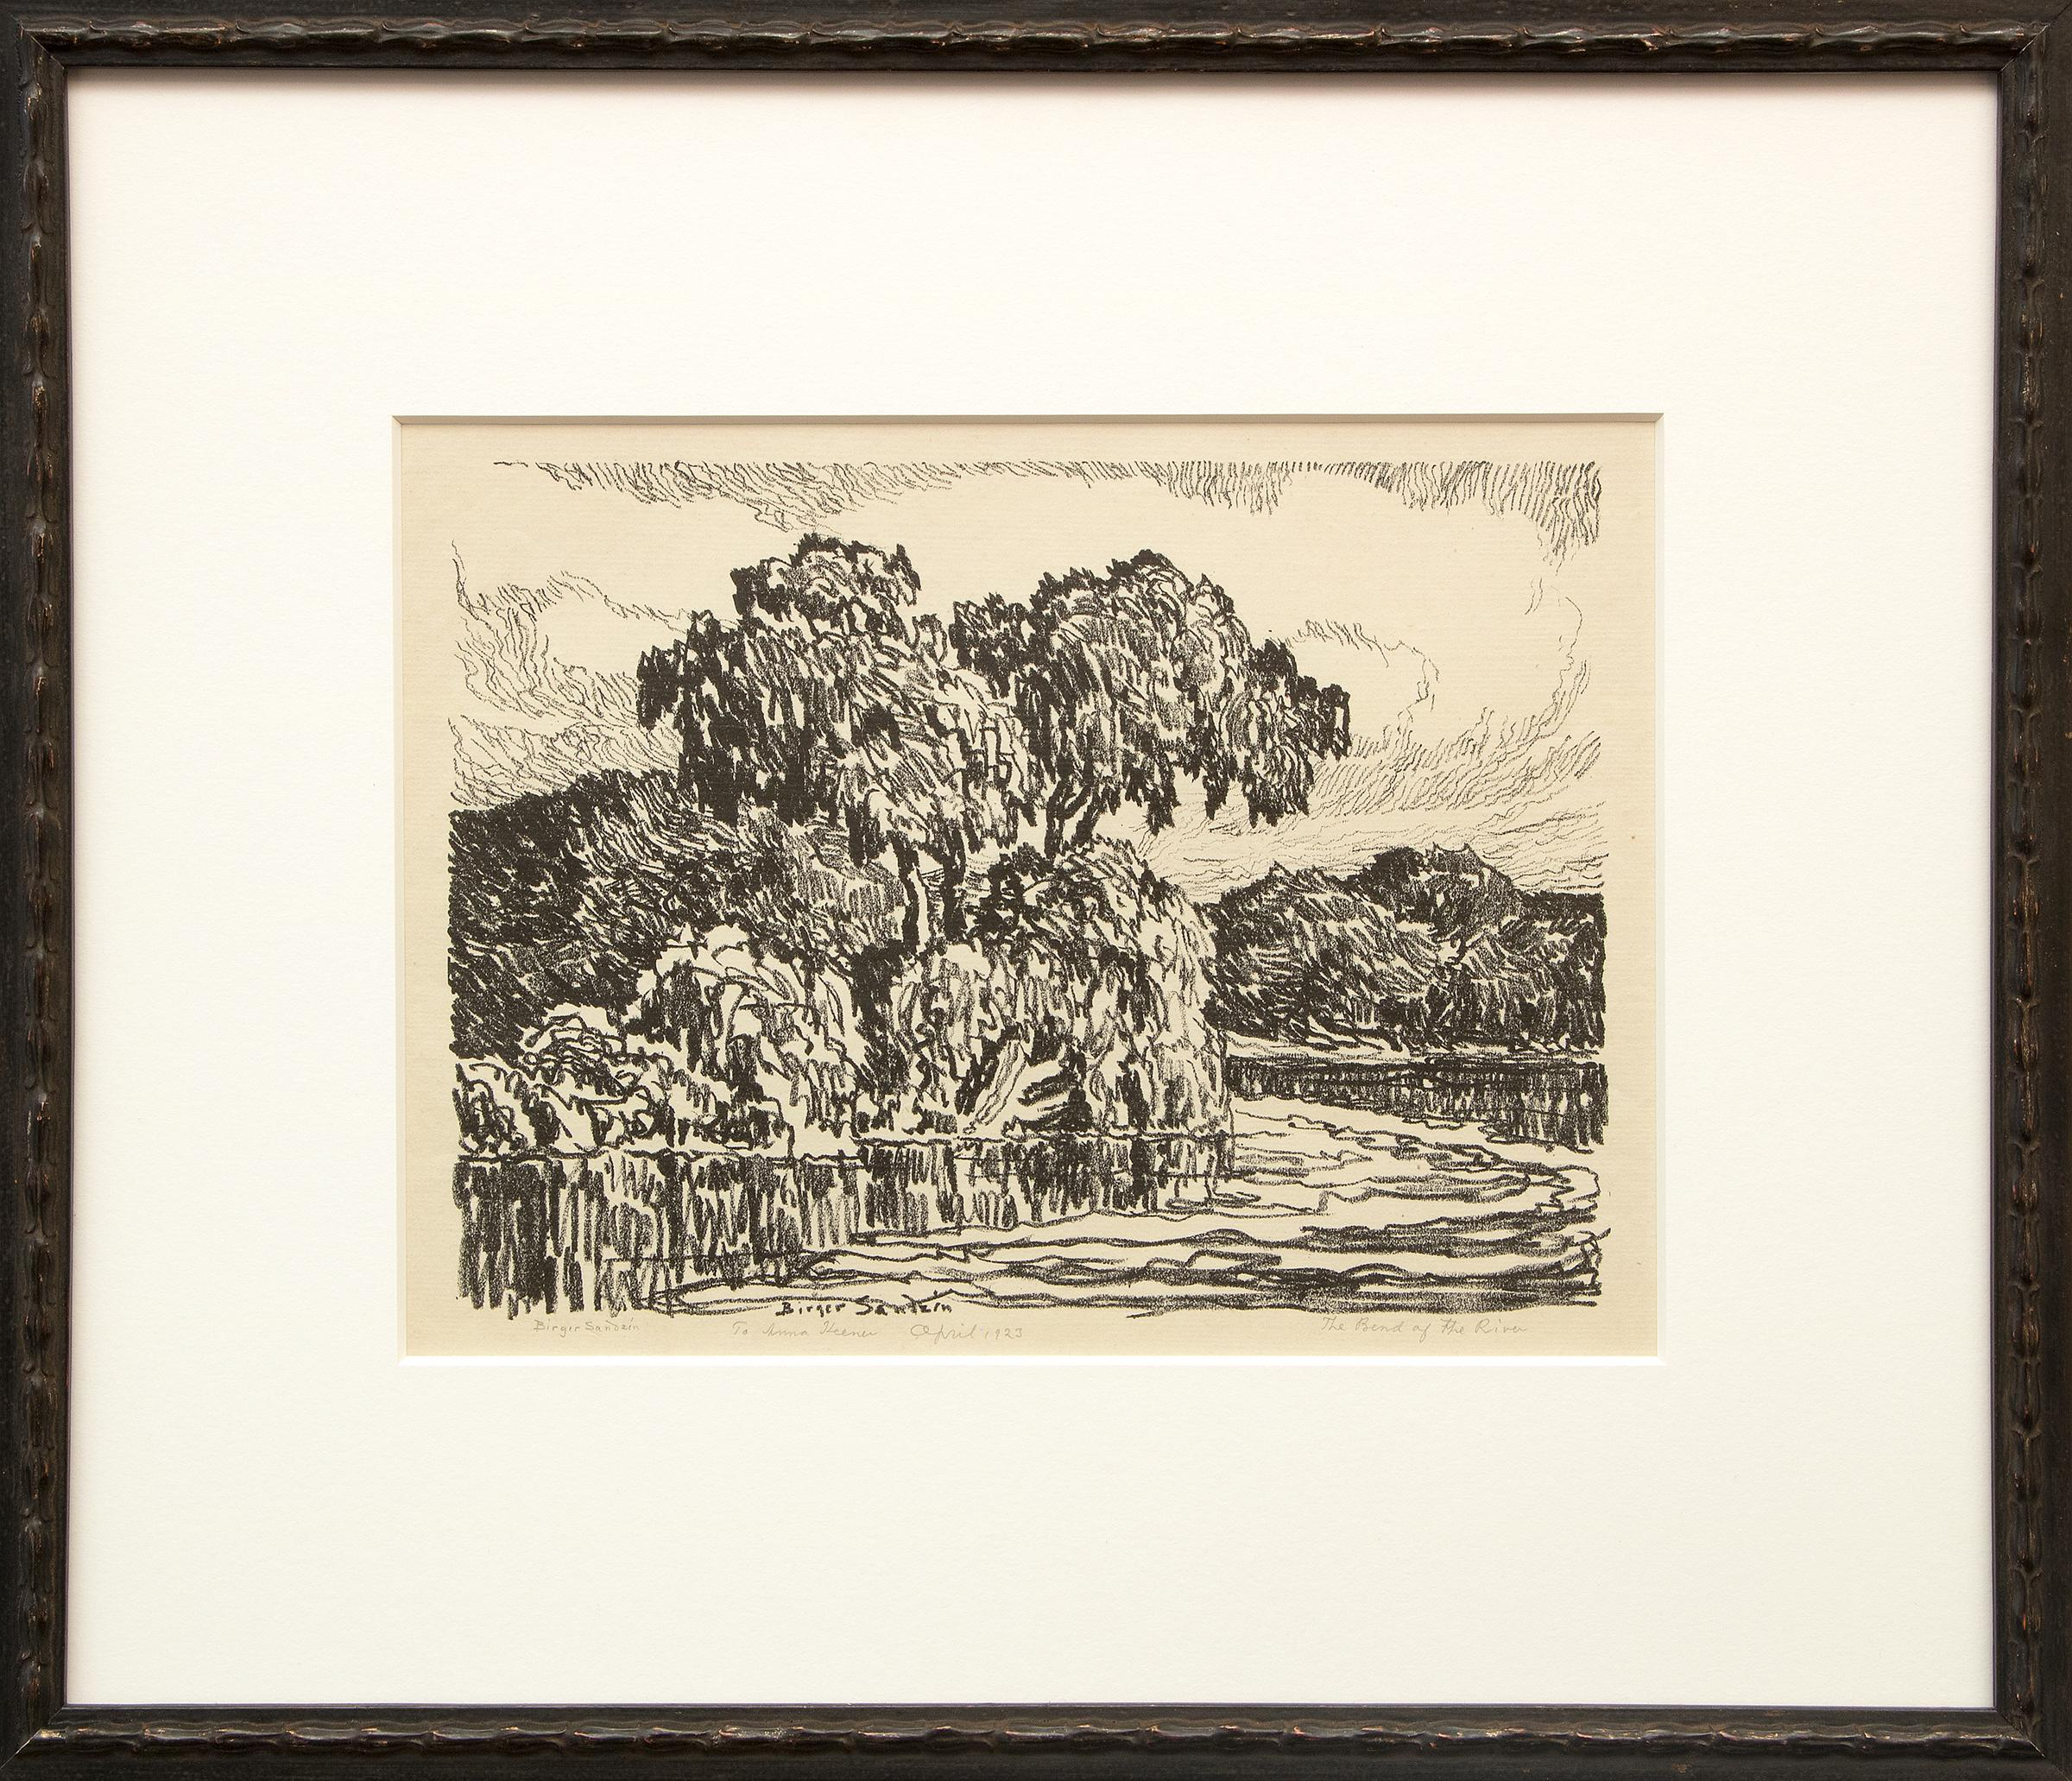 The Bend of the River, Vintage Original Signed Lithograph by Birger Sandzen